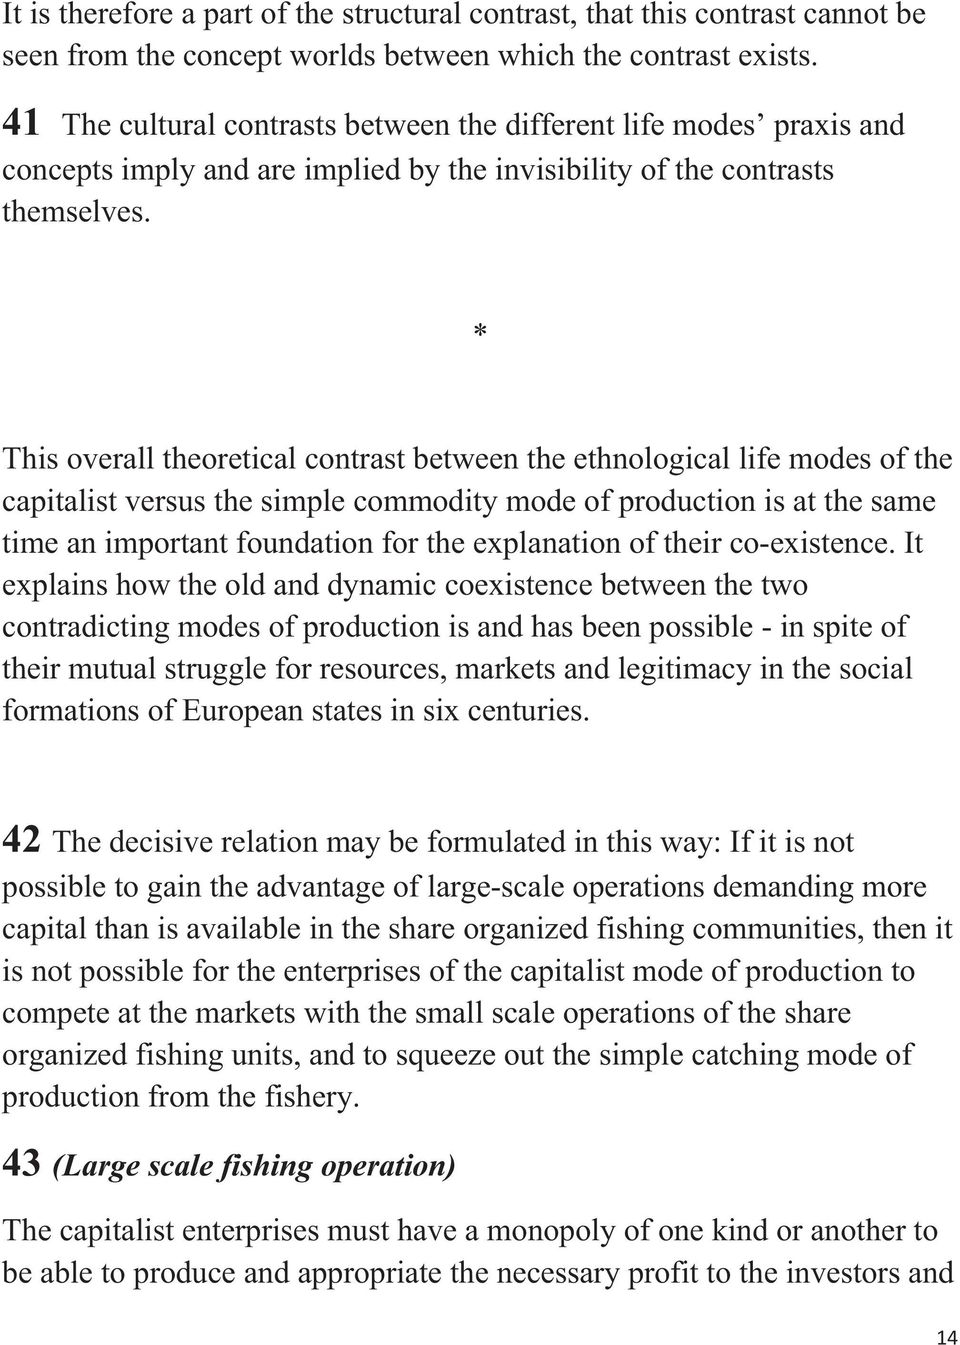 * This overall theoretical contrast between the ethnological life modes of the capitalist versus the simple commodity mode of production is at the same time an important foundation for the